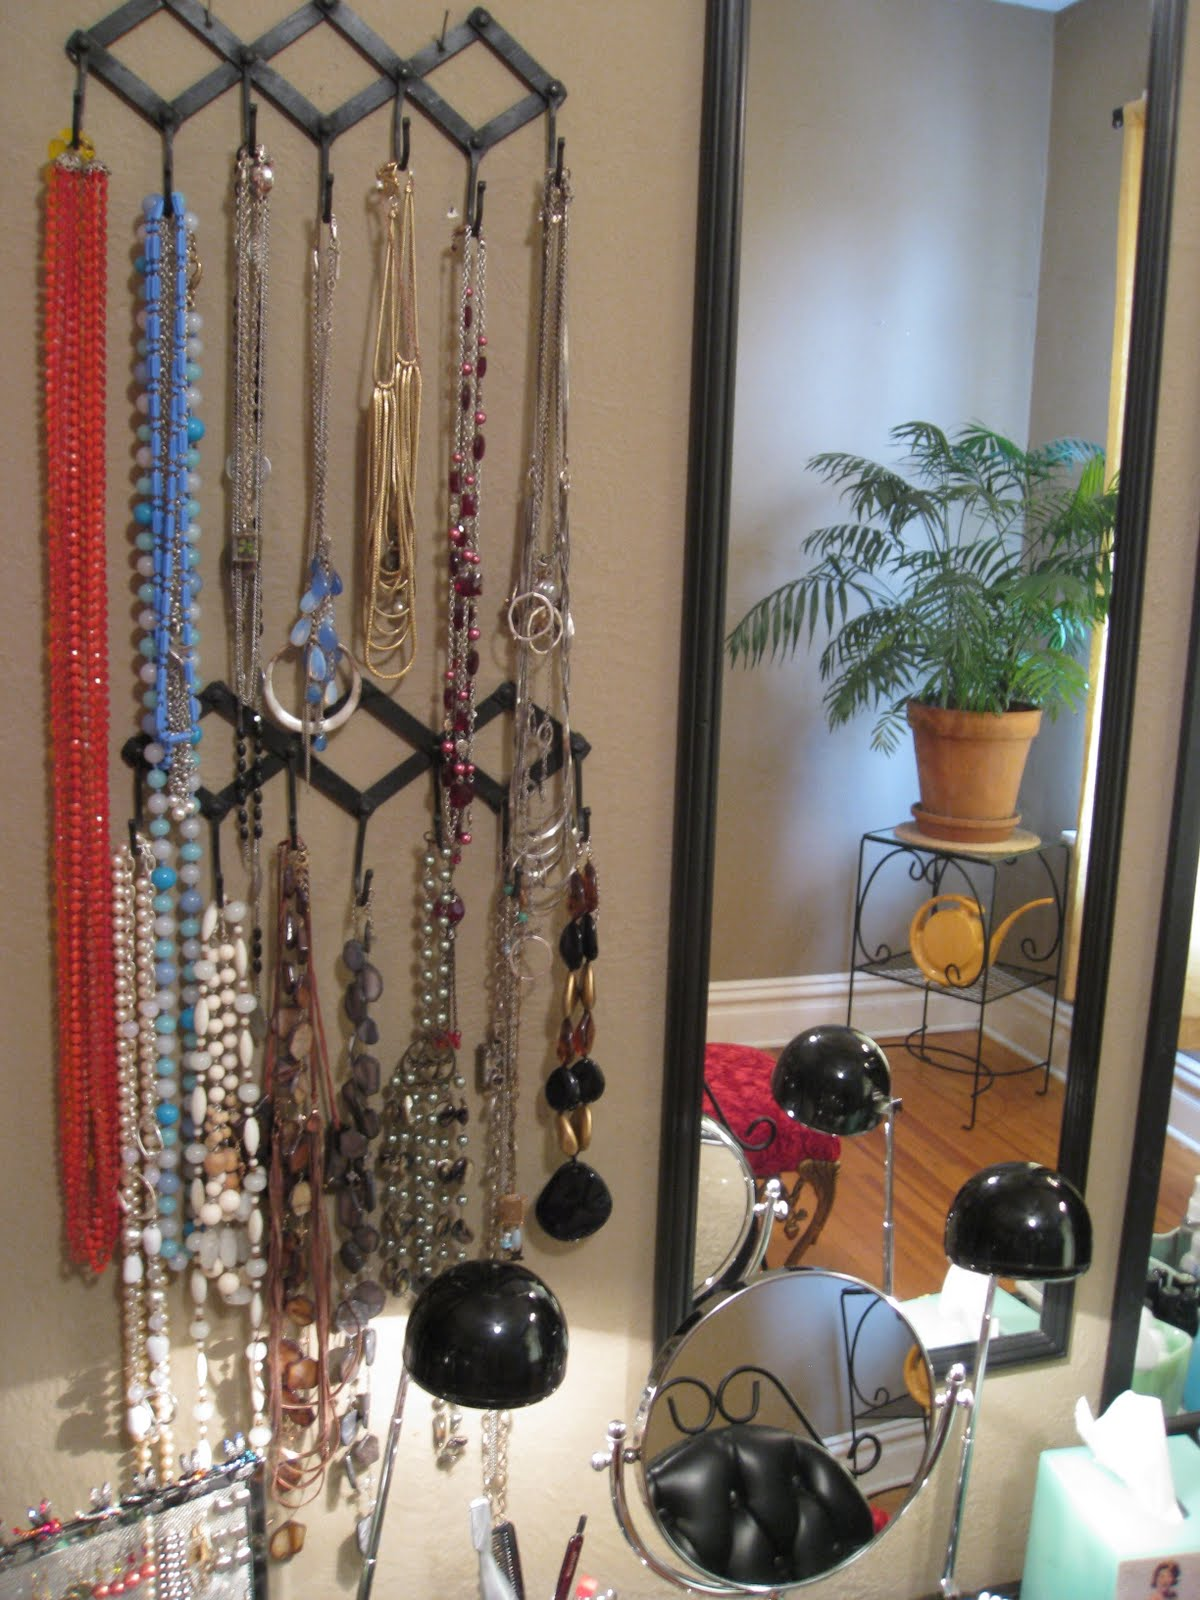 Squeaky Chic Jewelry Organization Ideas